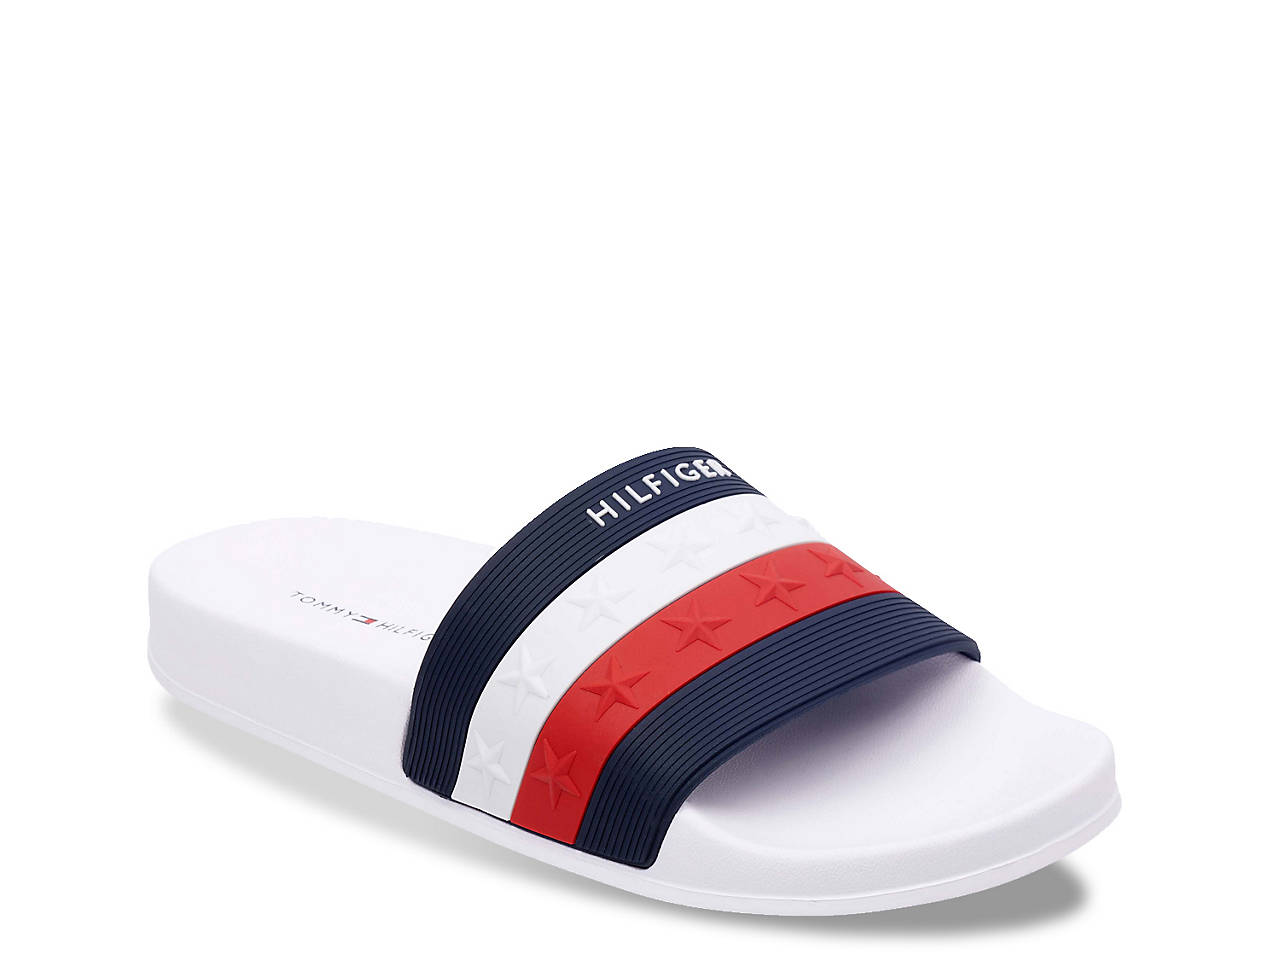 TOMMY HILFIGER WOMEN. Discover the latest styles in women's clothing, shoes, bags and accessories from Tommy cursoformuladosmusculos.tkr you are shopping for a glam event, your next festival or a big night out, this season's collection from Tommy Hilfiger for women has got you covered.